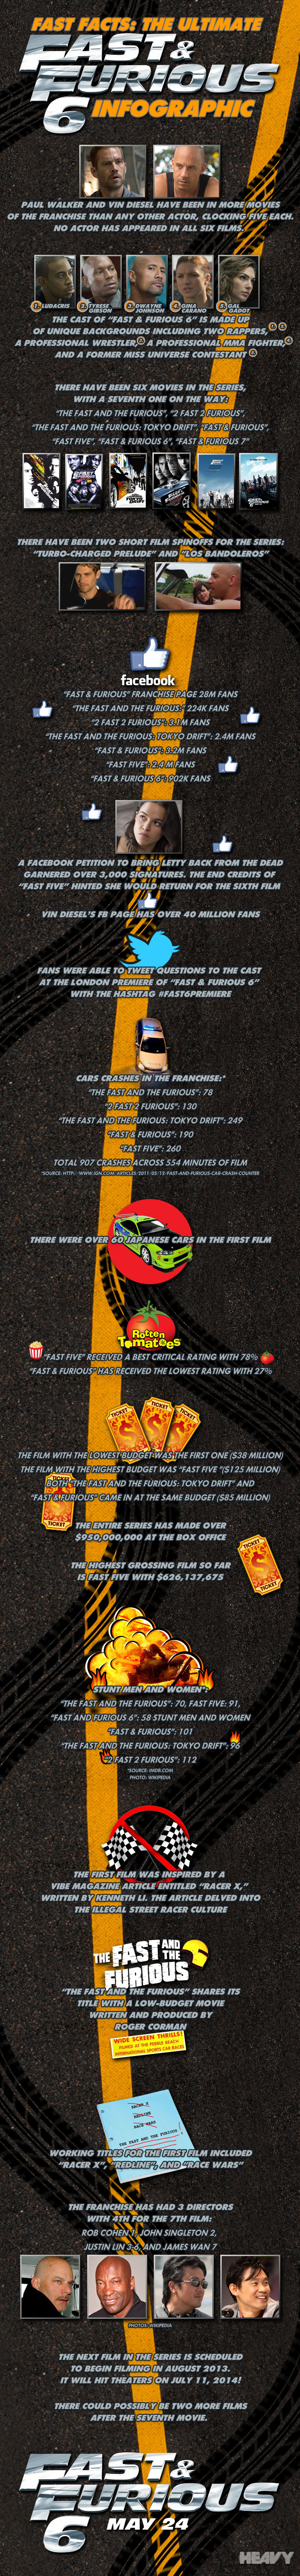 'Fast & Furious 6' Infographic